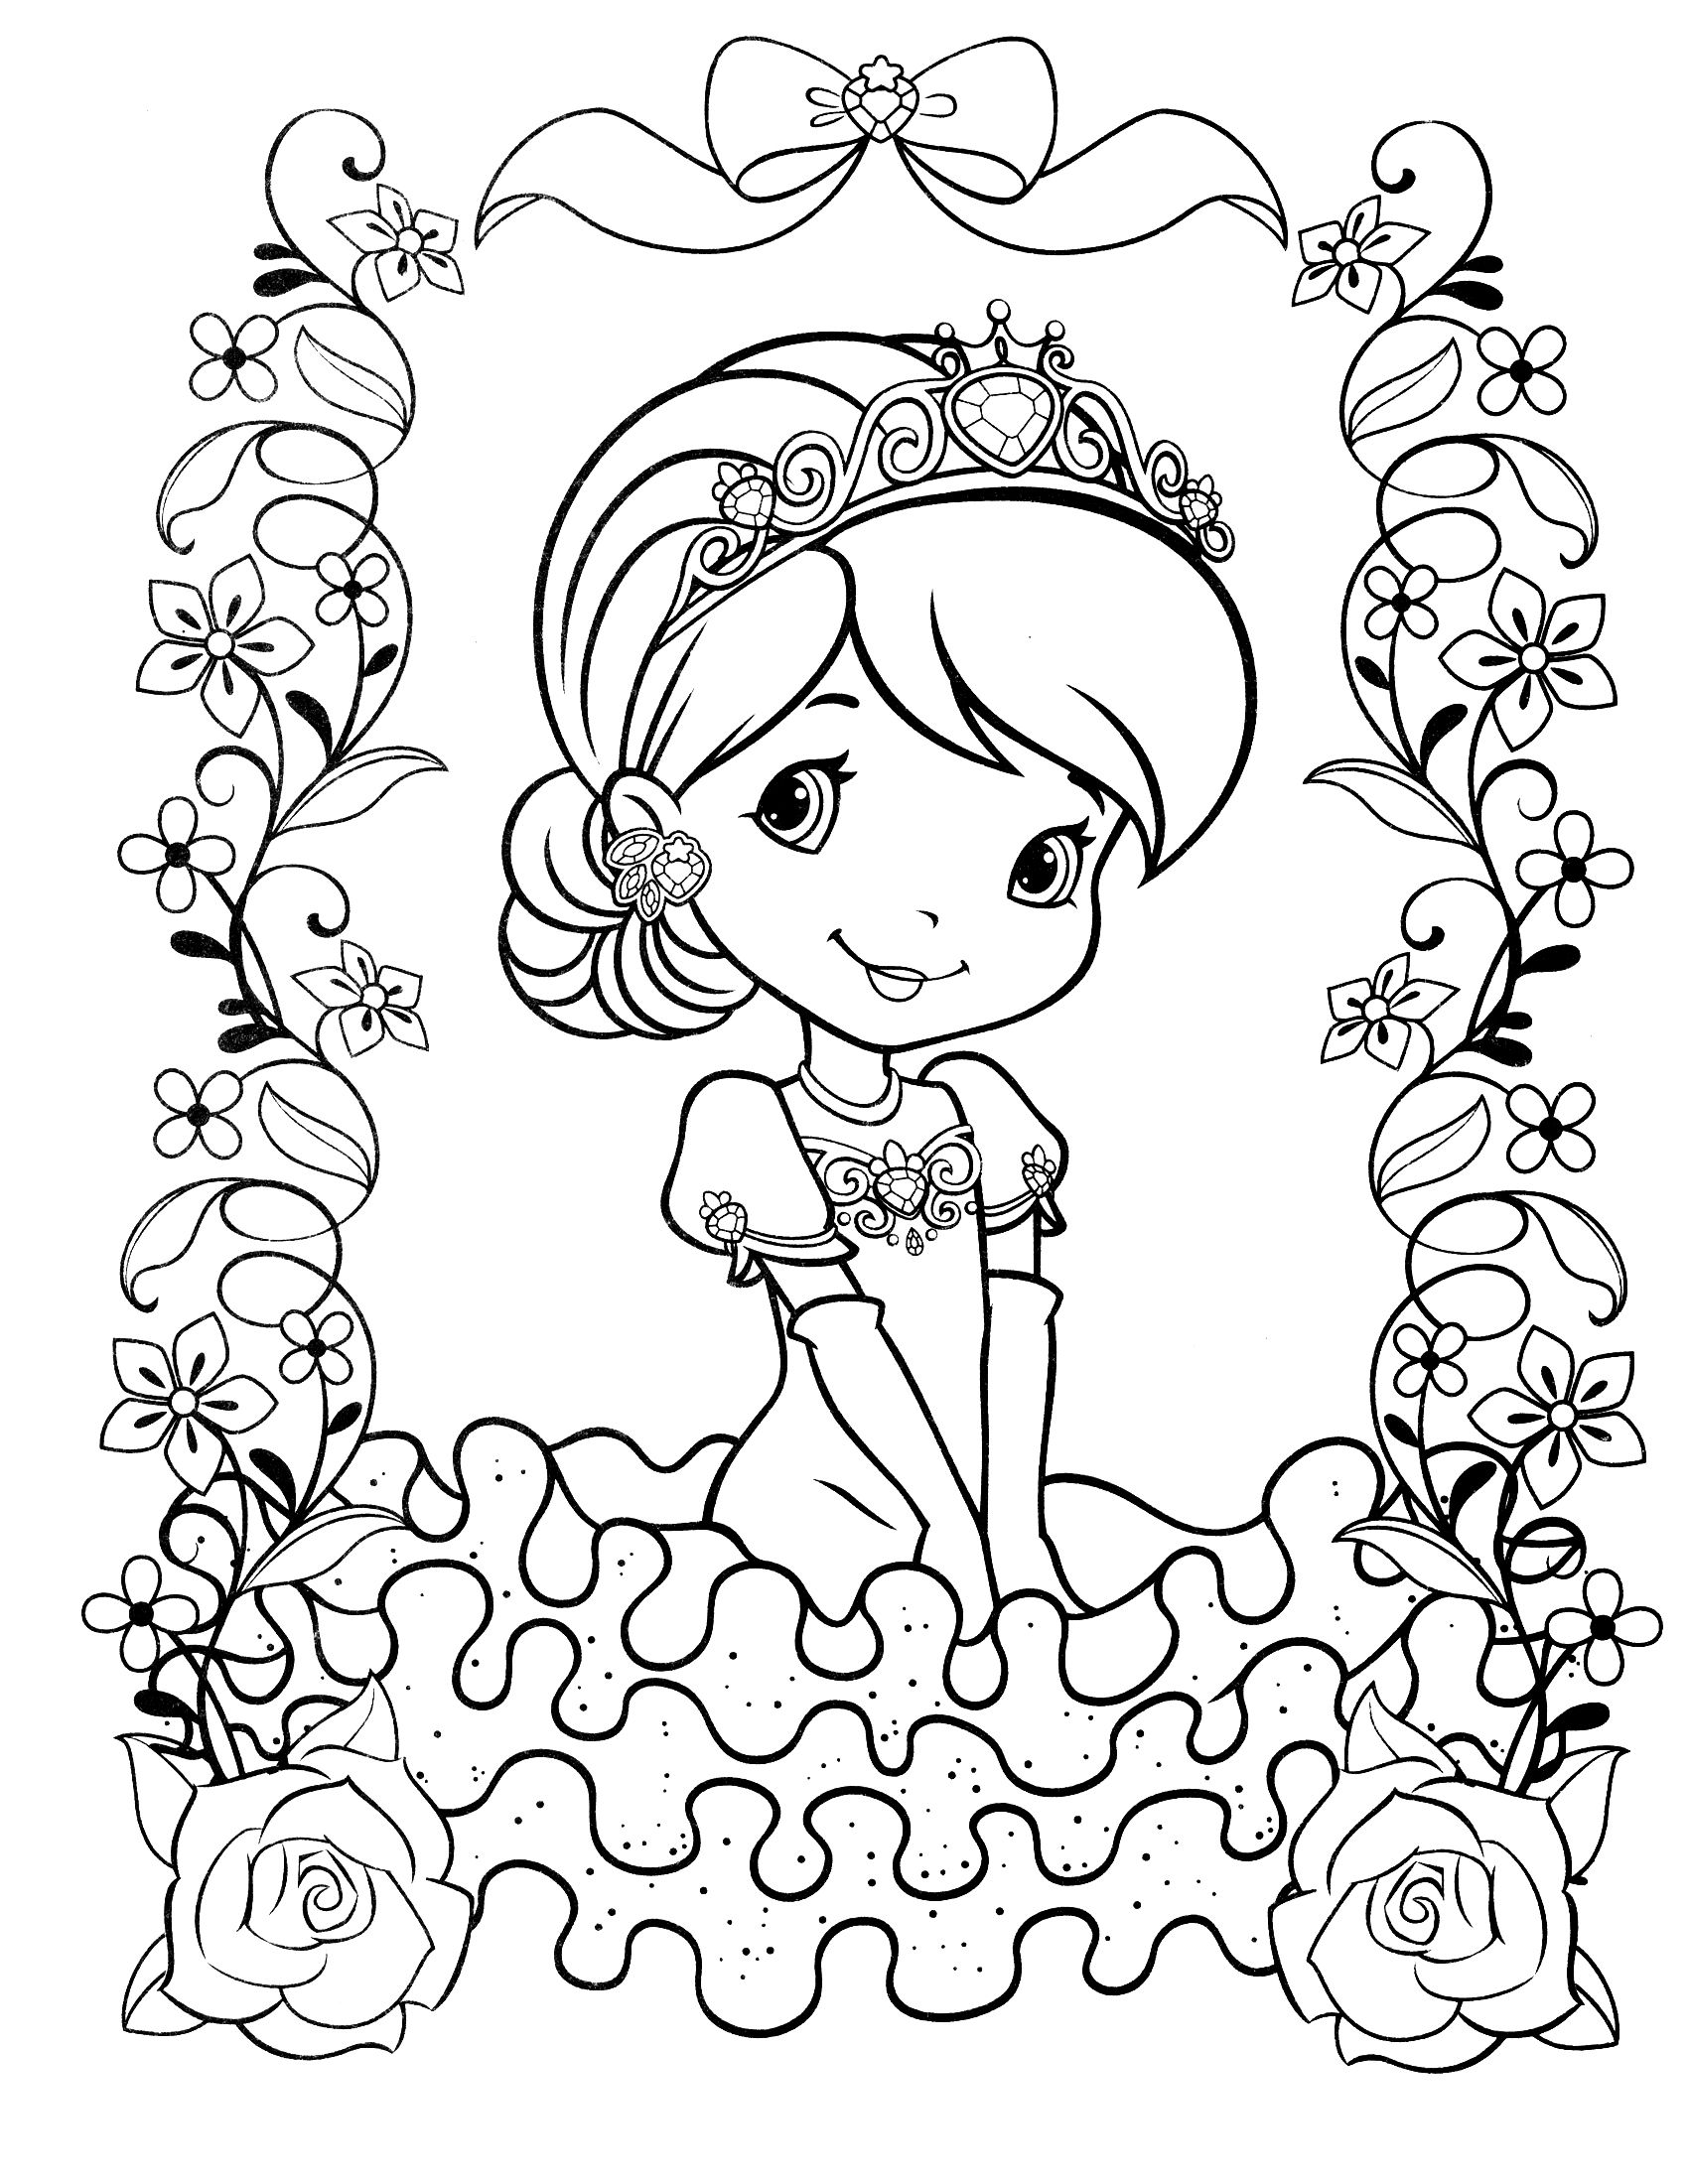 1700x2200 Strawberry Shortcake Coloring Page Strawberry Shortcake